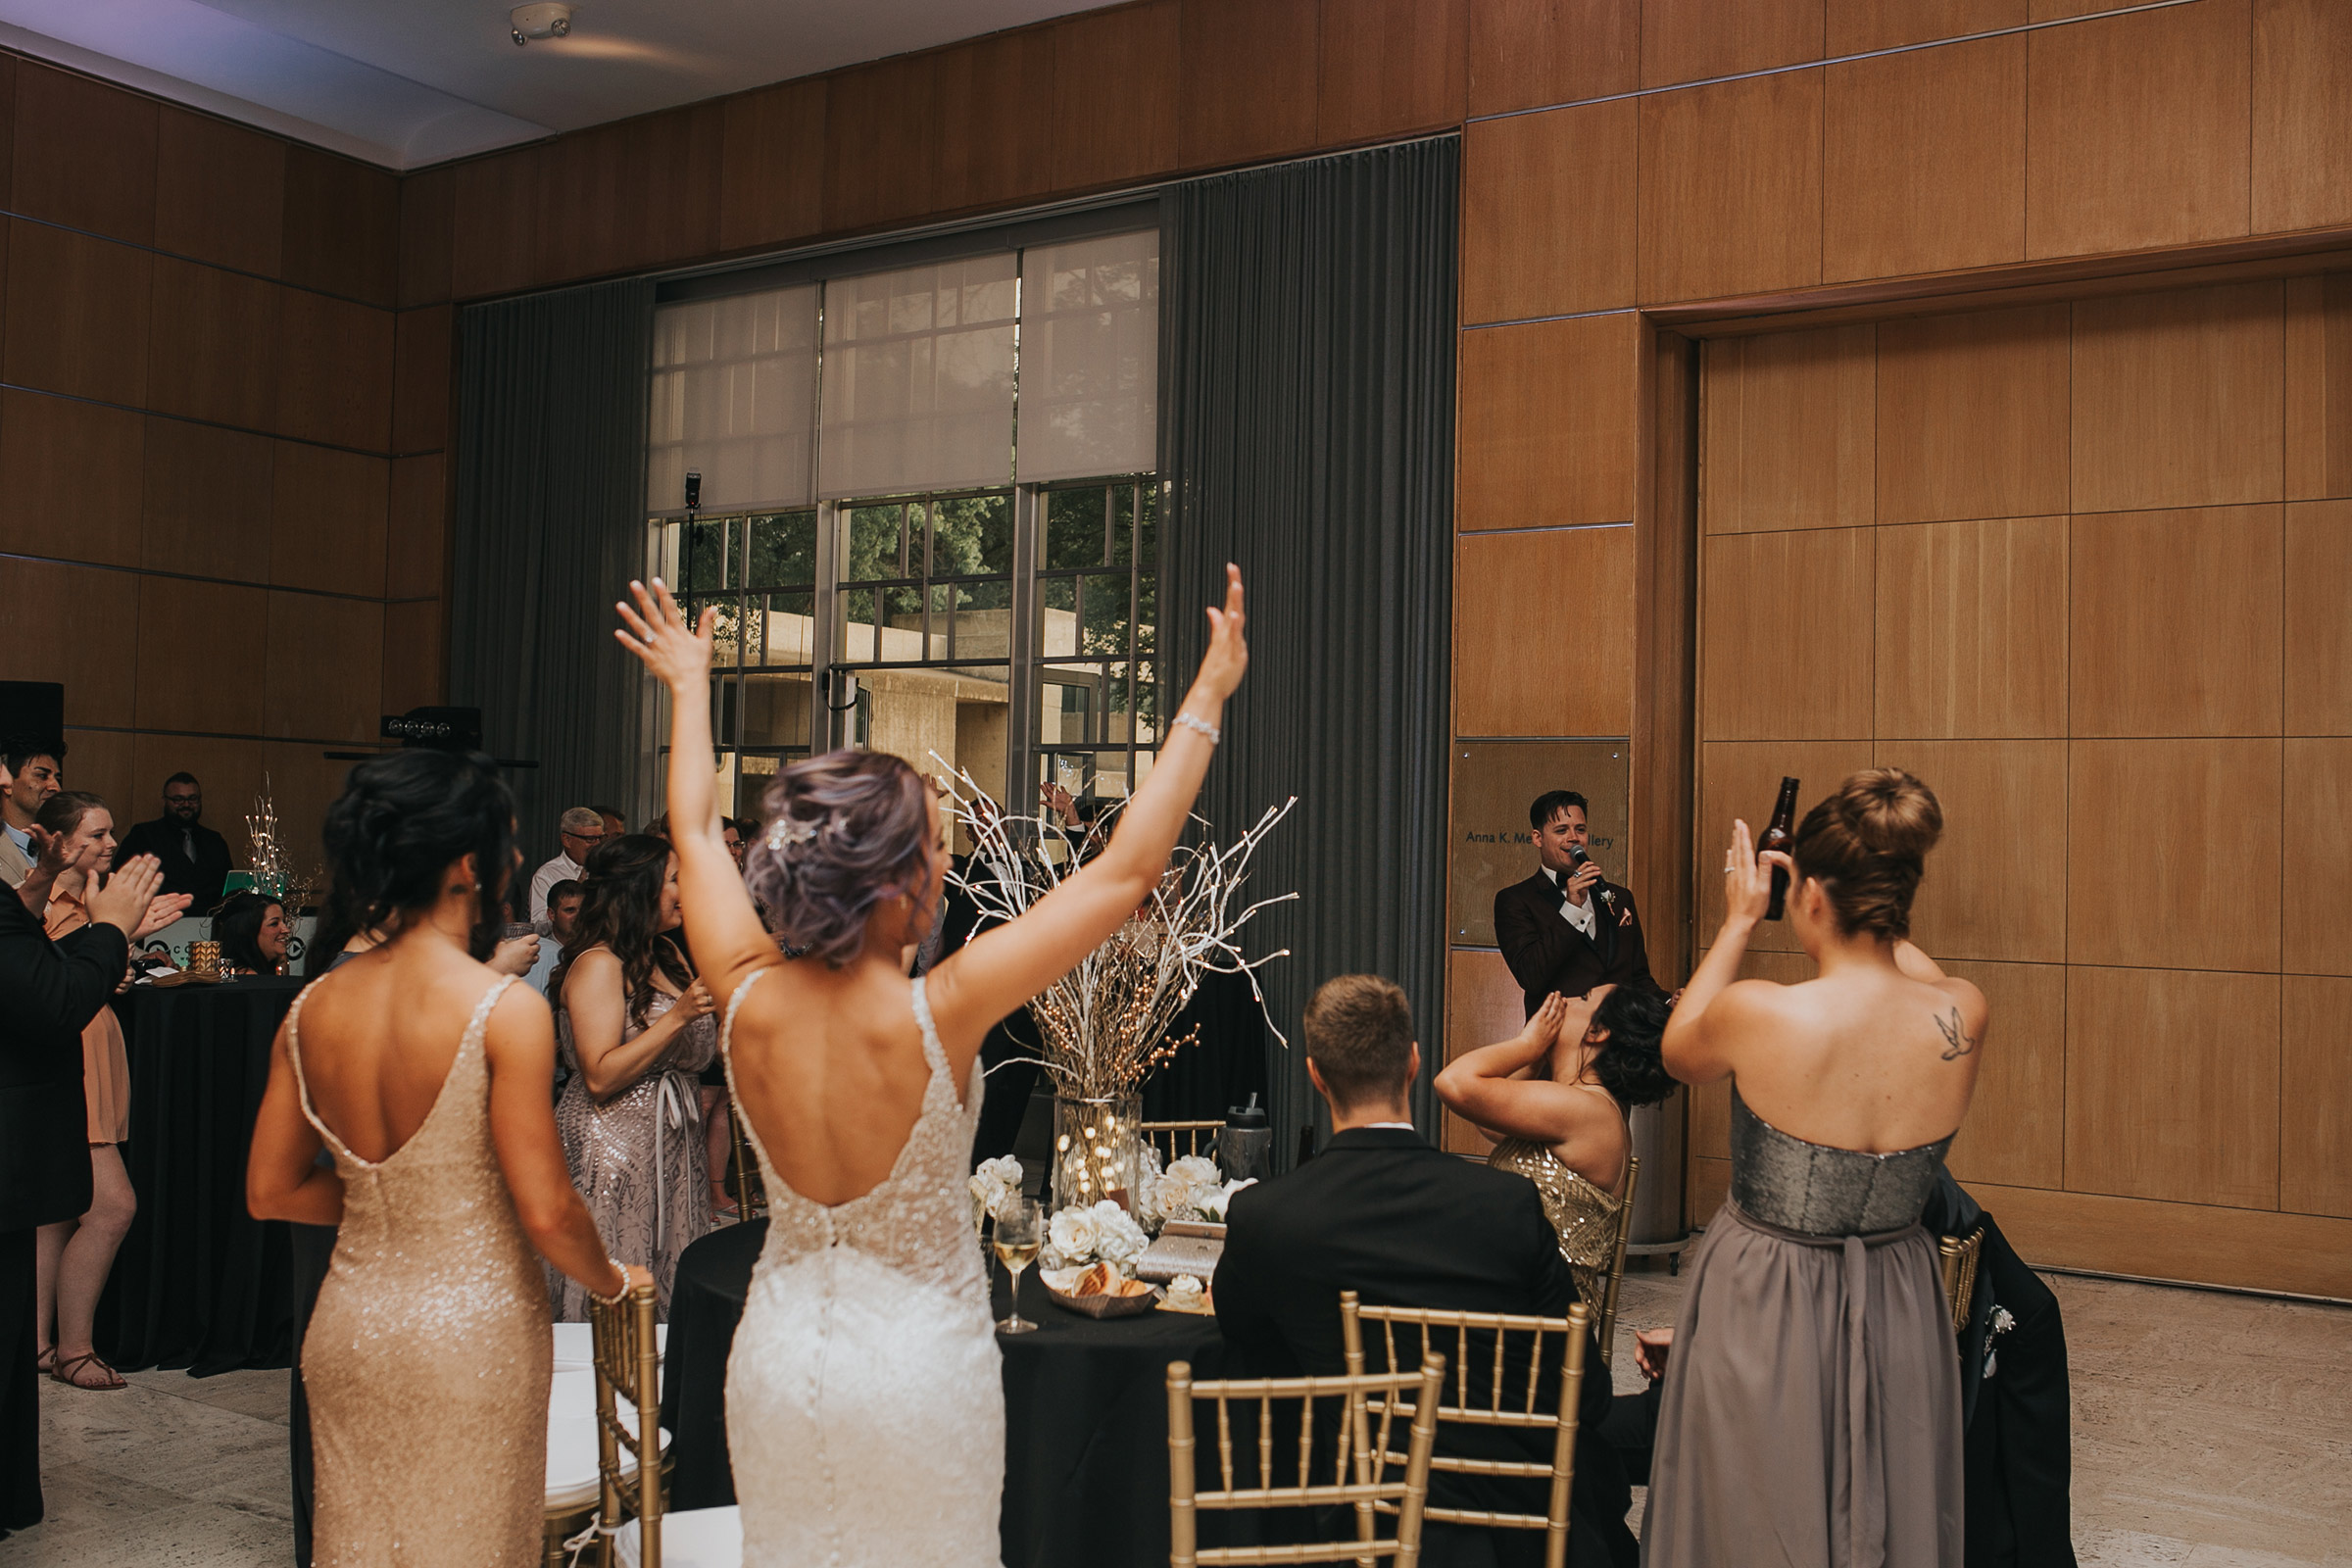 groom-making-speech-about-bride-with-her-hands-in-the-air-desmoines-iowa-art-center-raelyn-ramey-photography.jpg